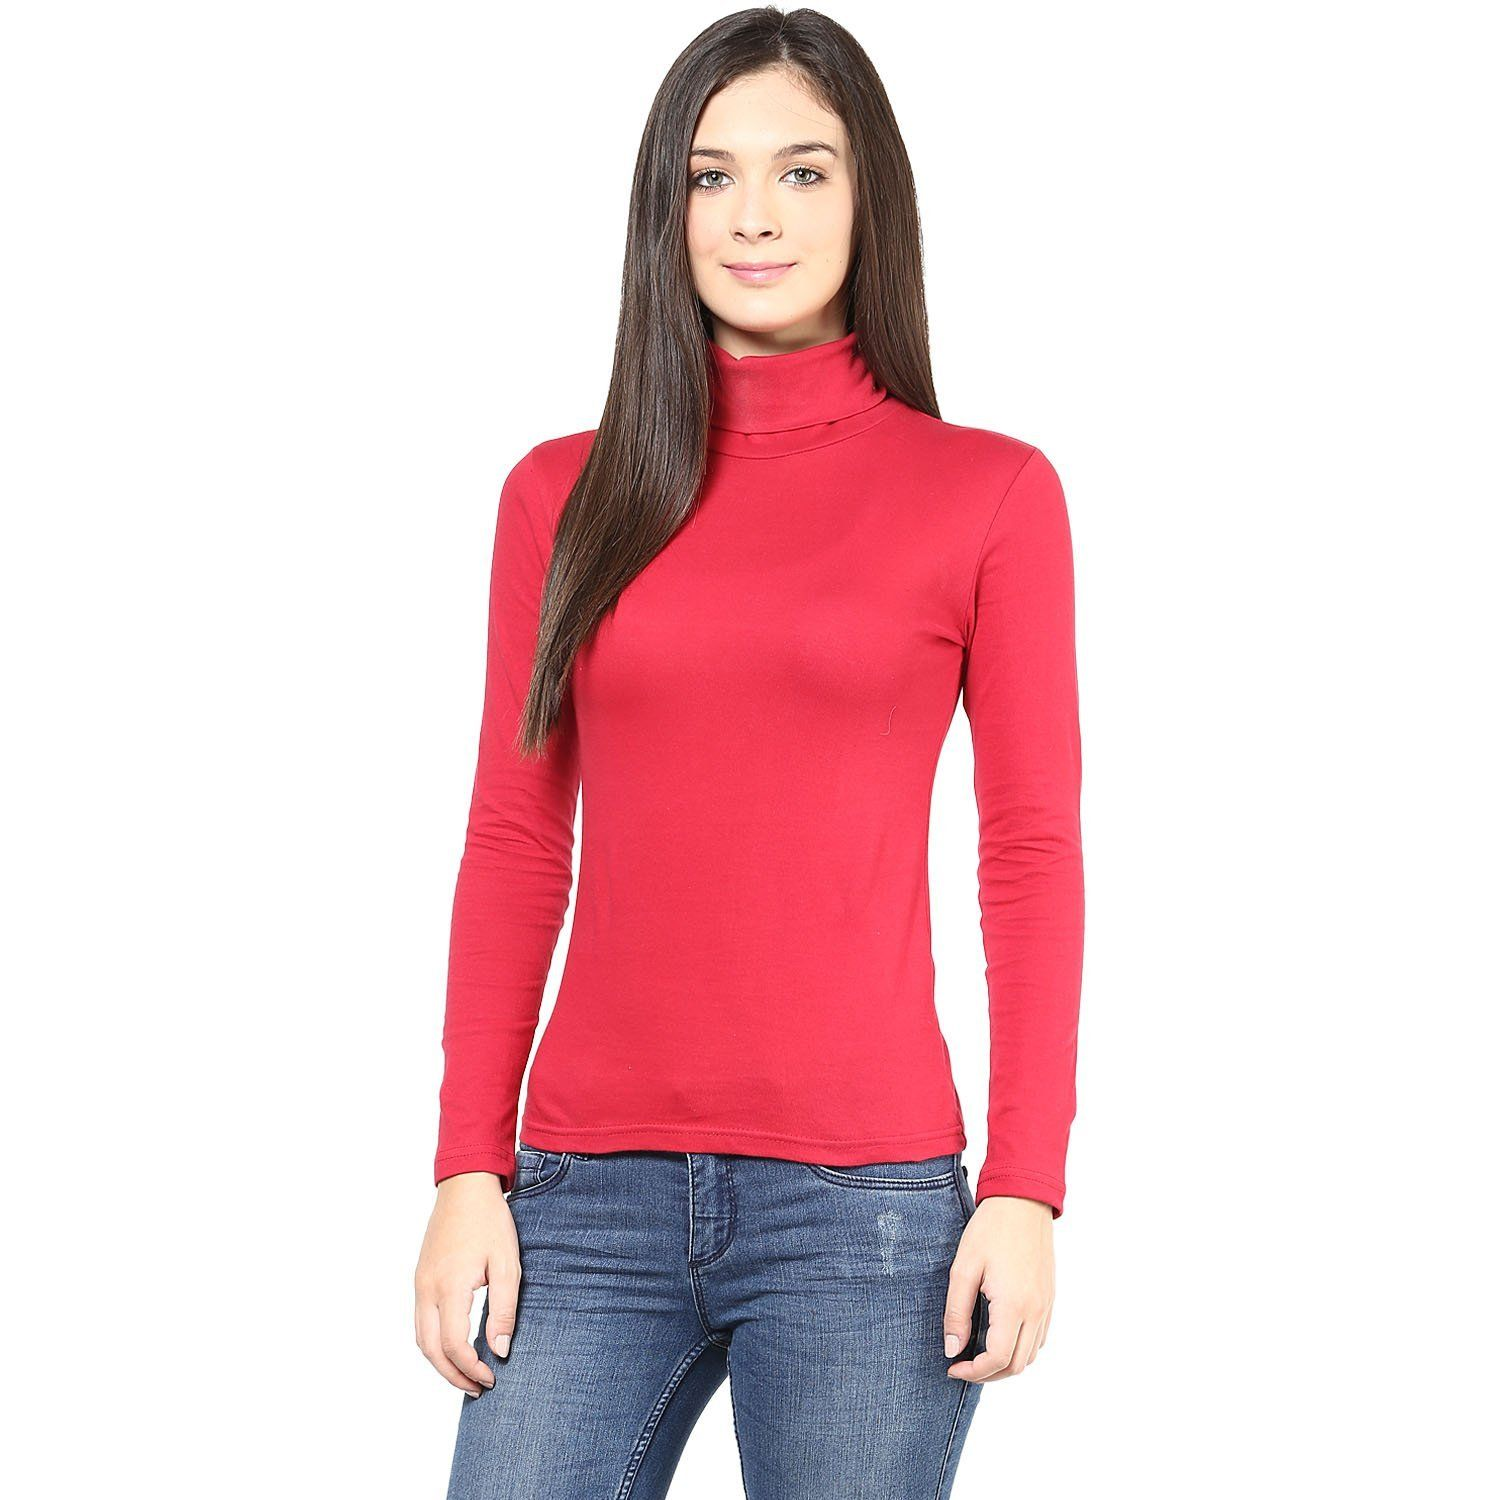 4f41a6ab05cf1b Hypernation Red Cotton High Neck T-Shirts for Women Color : Red Febric :  Cotton Style : High Neck Sleeve Type : Full Sleeves